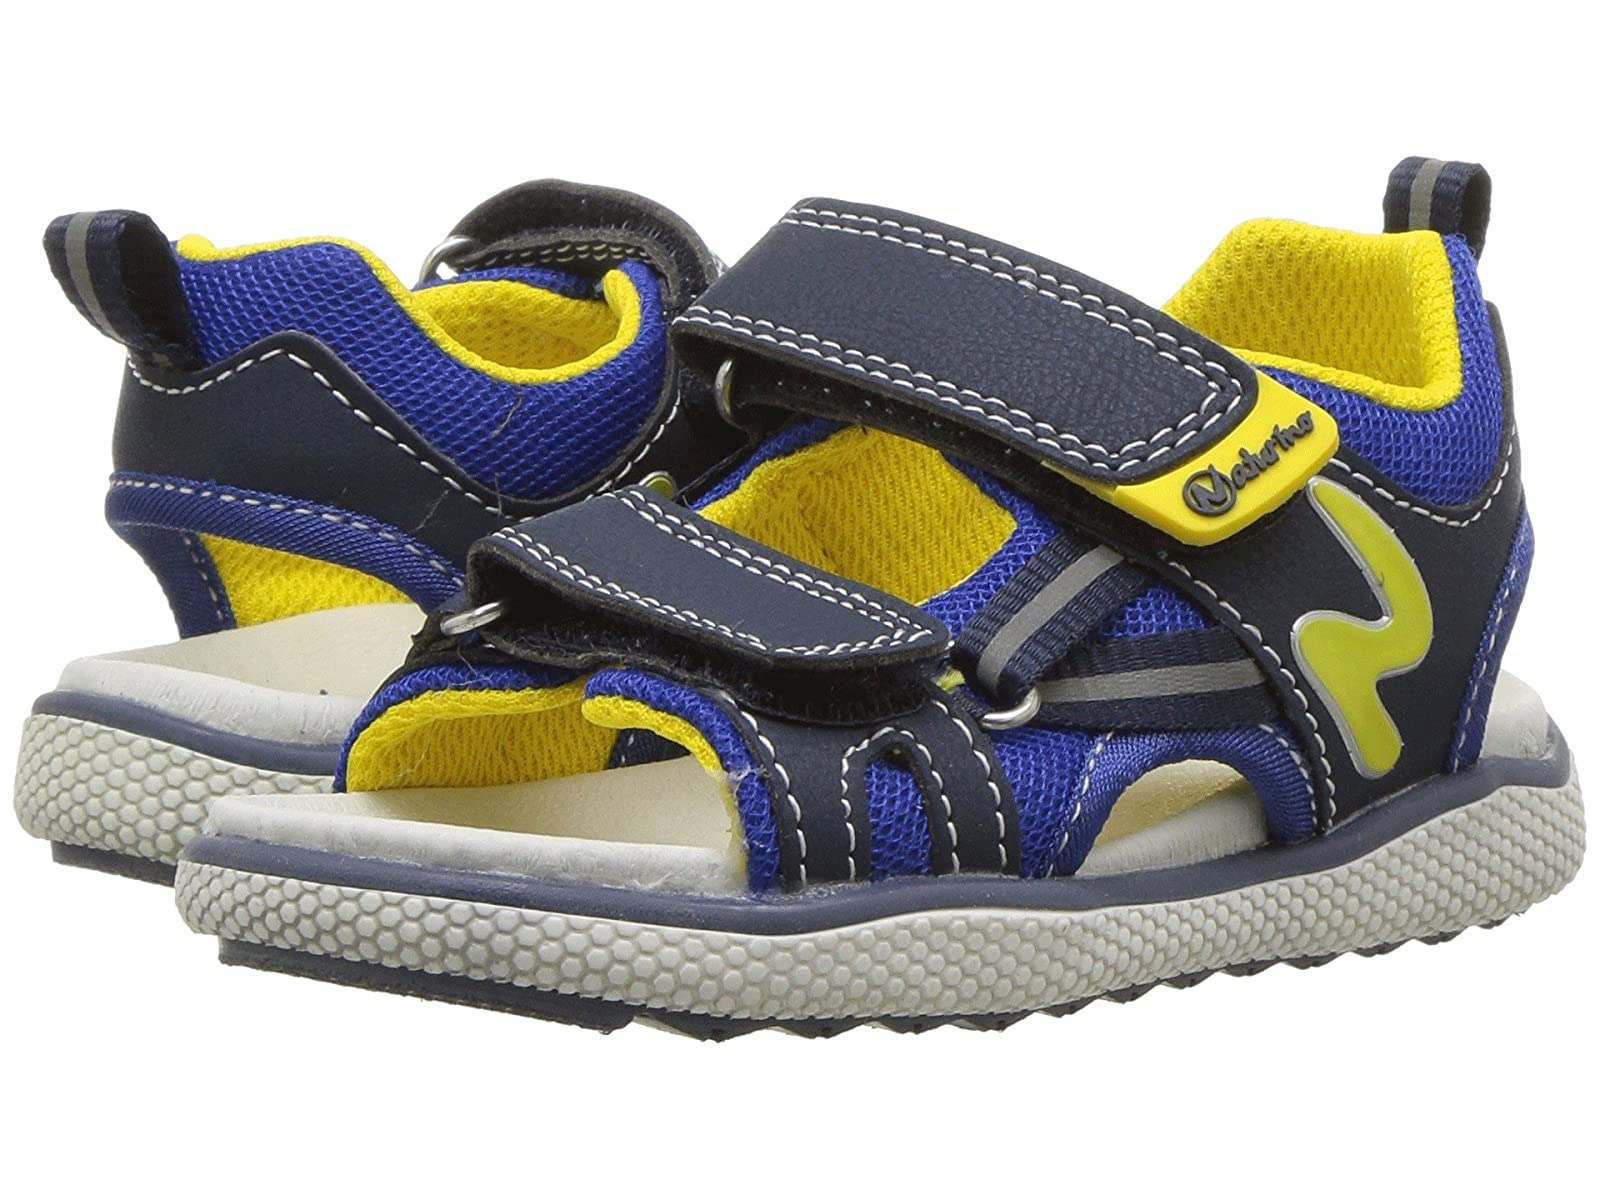 Naturino Sport 562 SS18 (Toddler/Little Kid)Atmospheric grades have affordable shoes